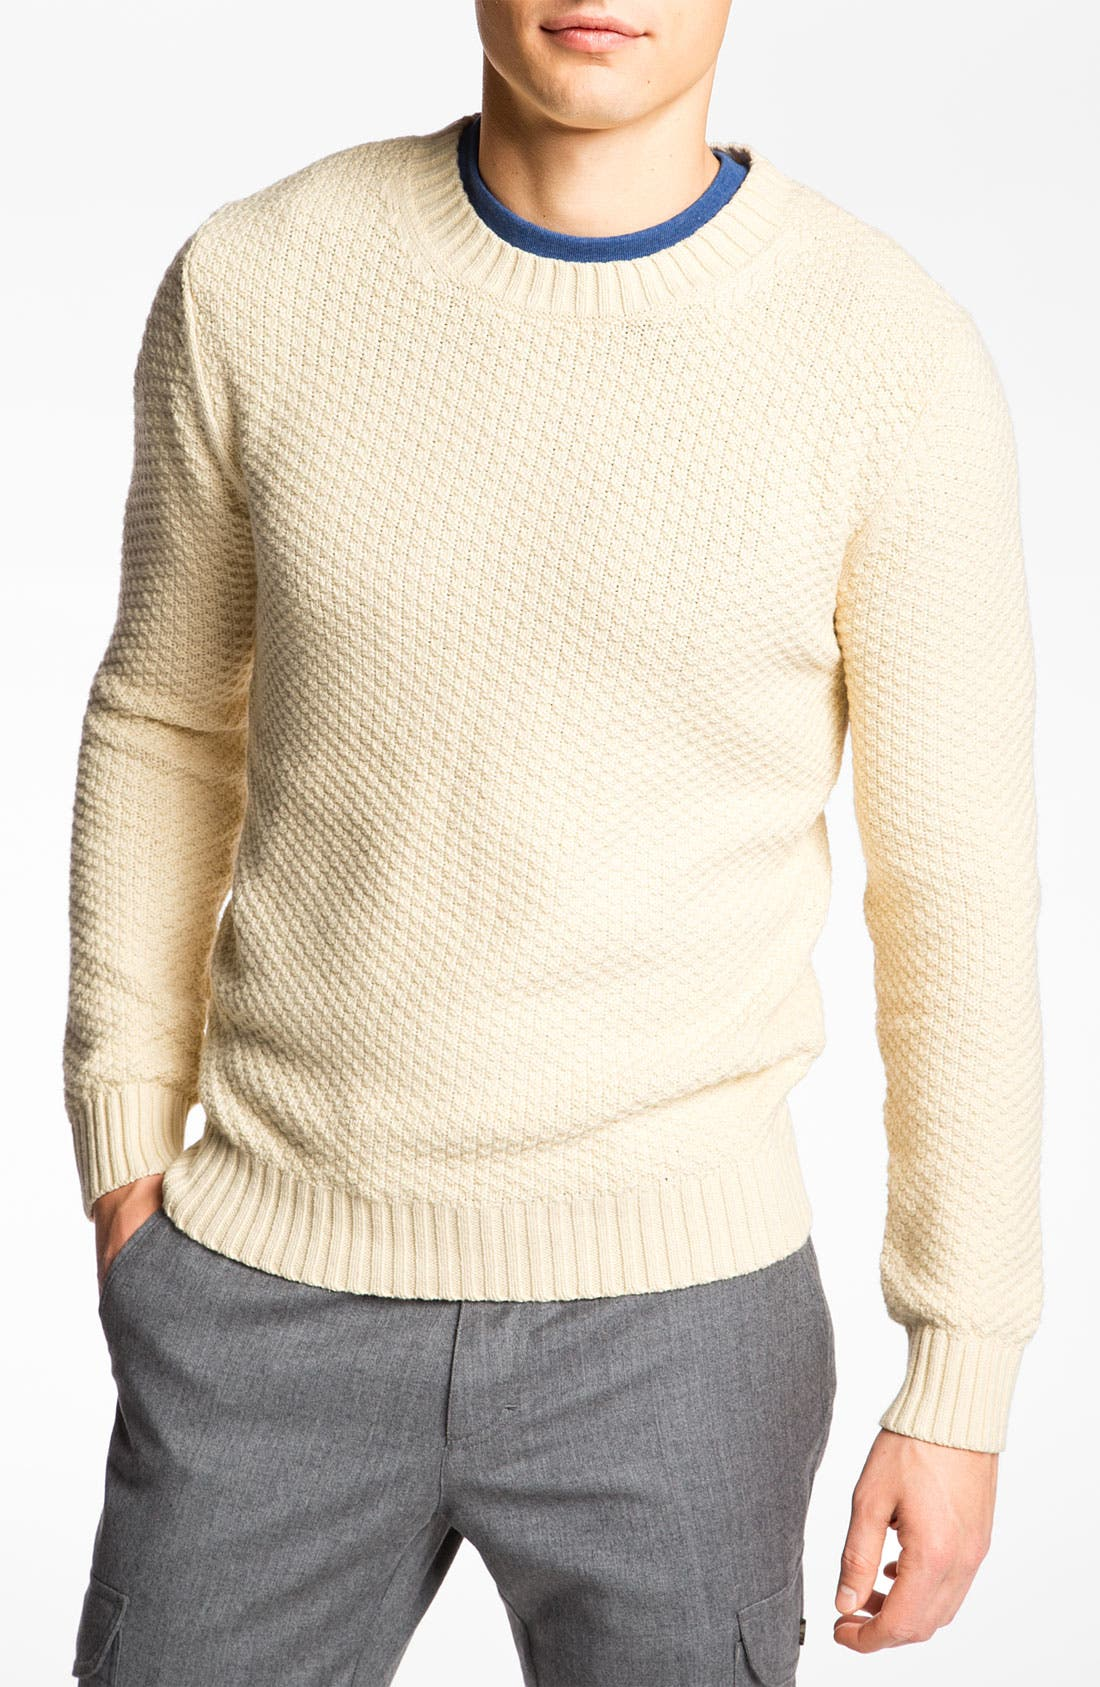 'Pineapple Knit' Sweater,                             Main thumbnail 1, color,                             130